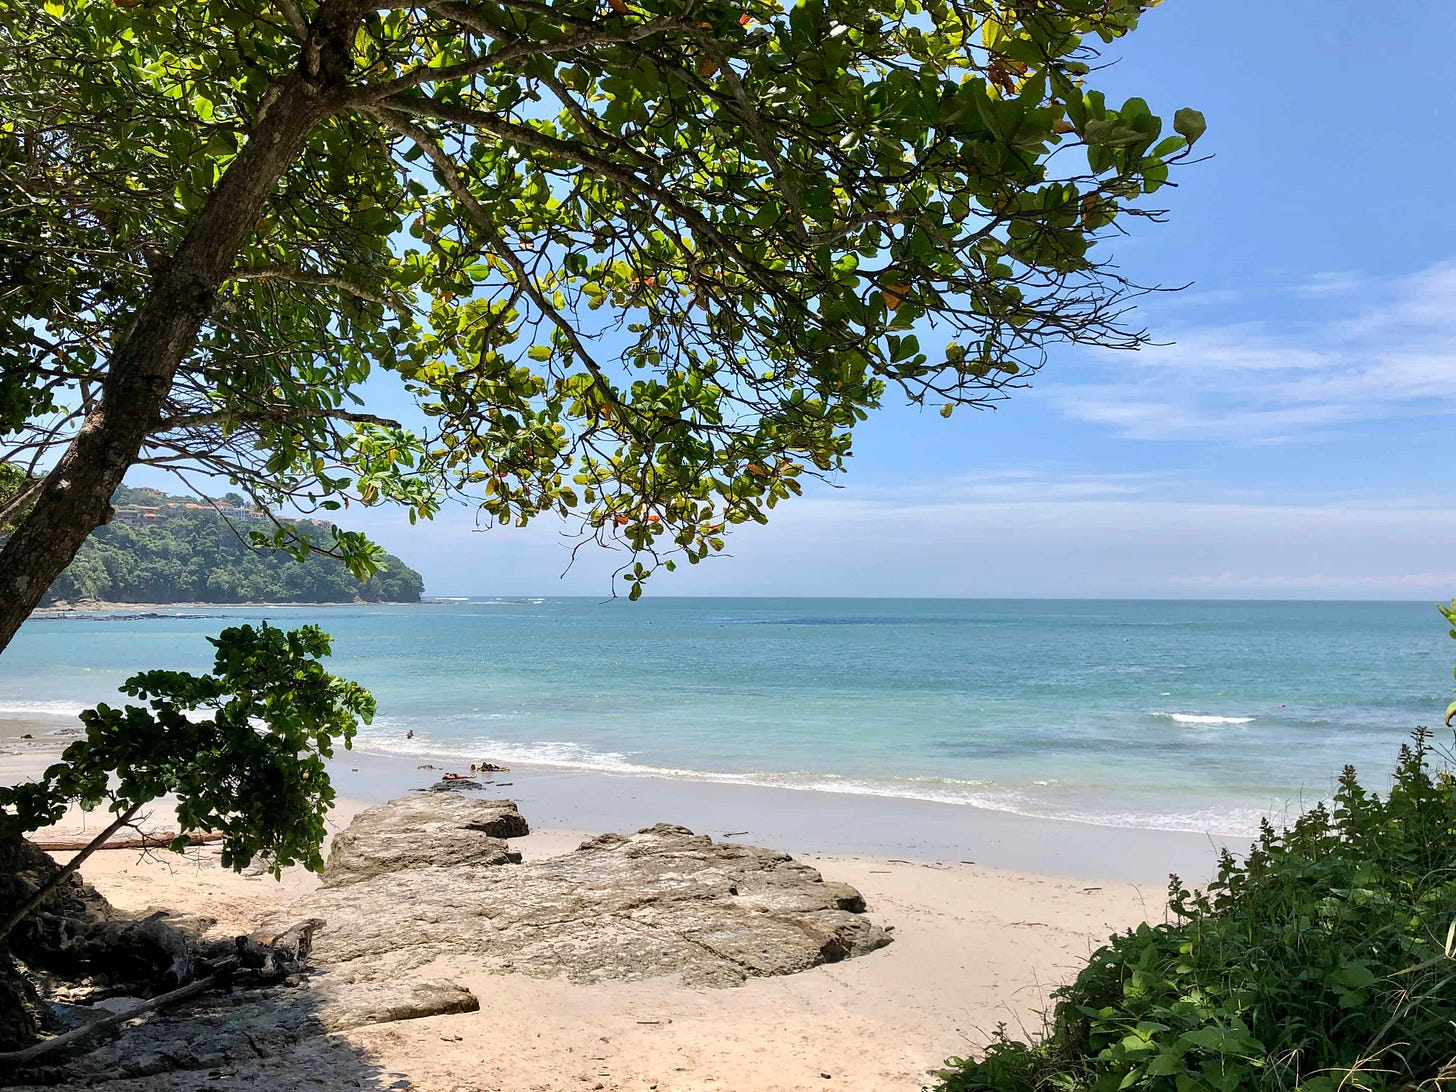 Pic of the Day: Finding a 'hidden' beach in Costa Rica -